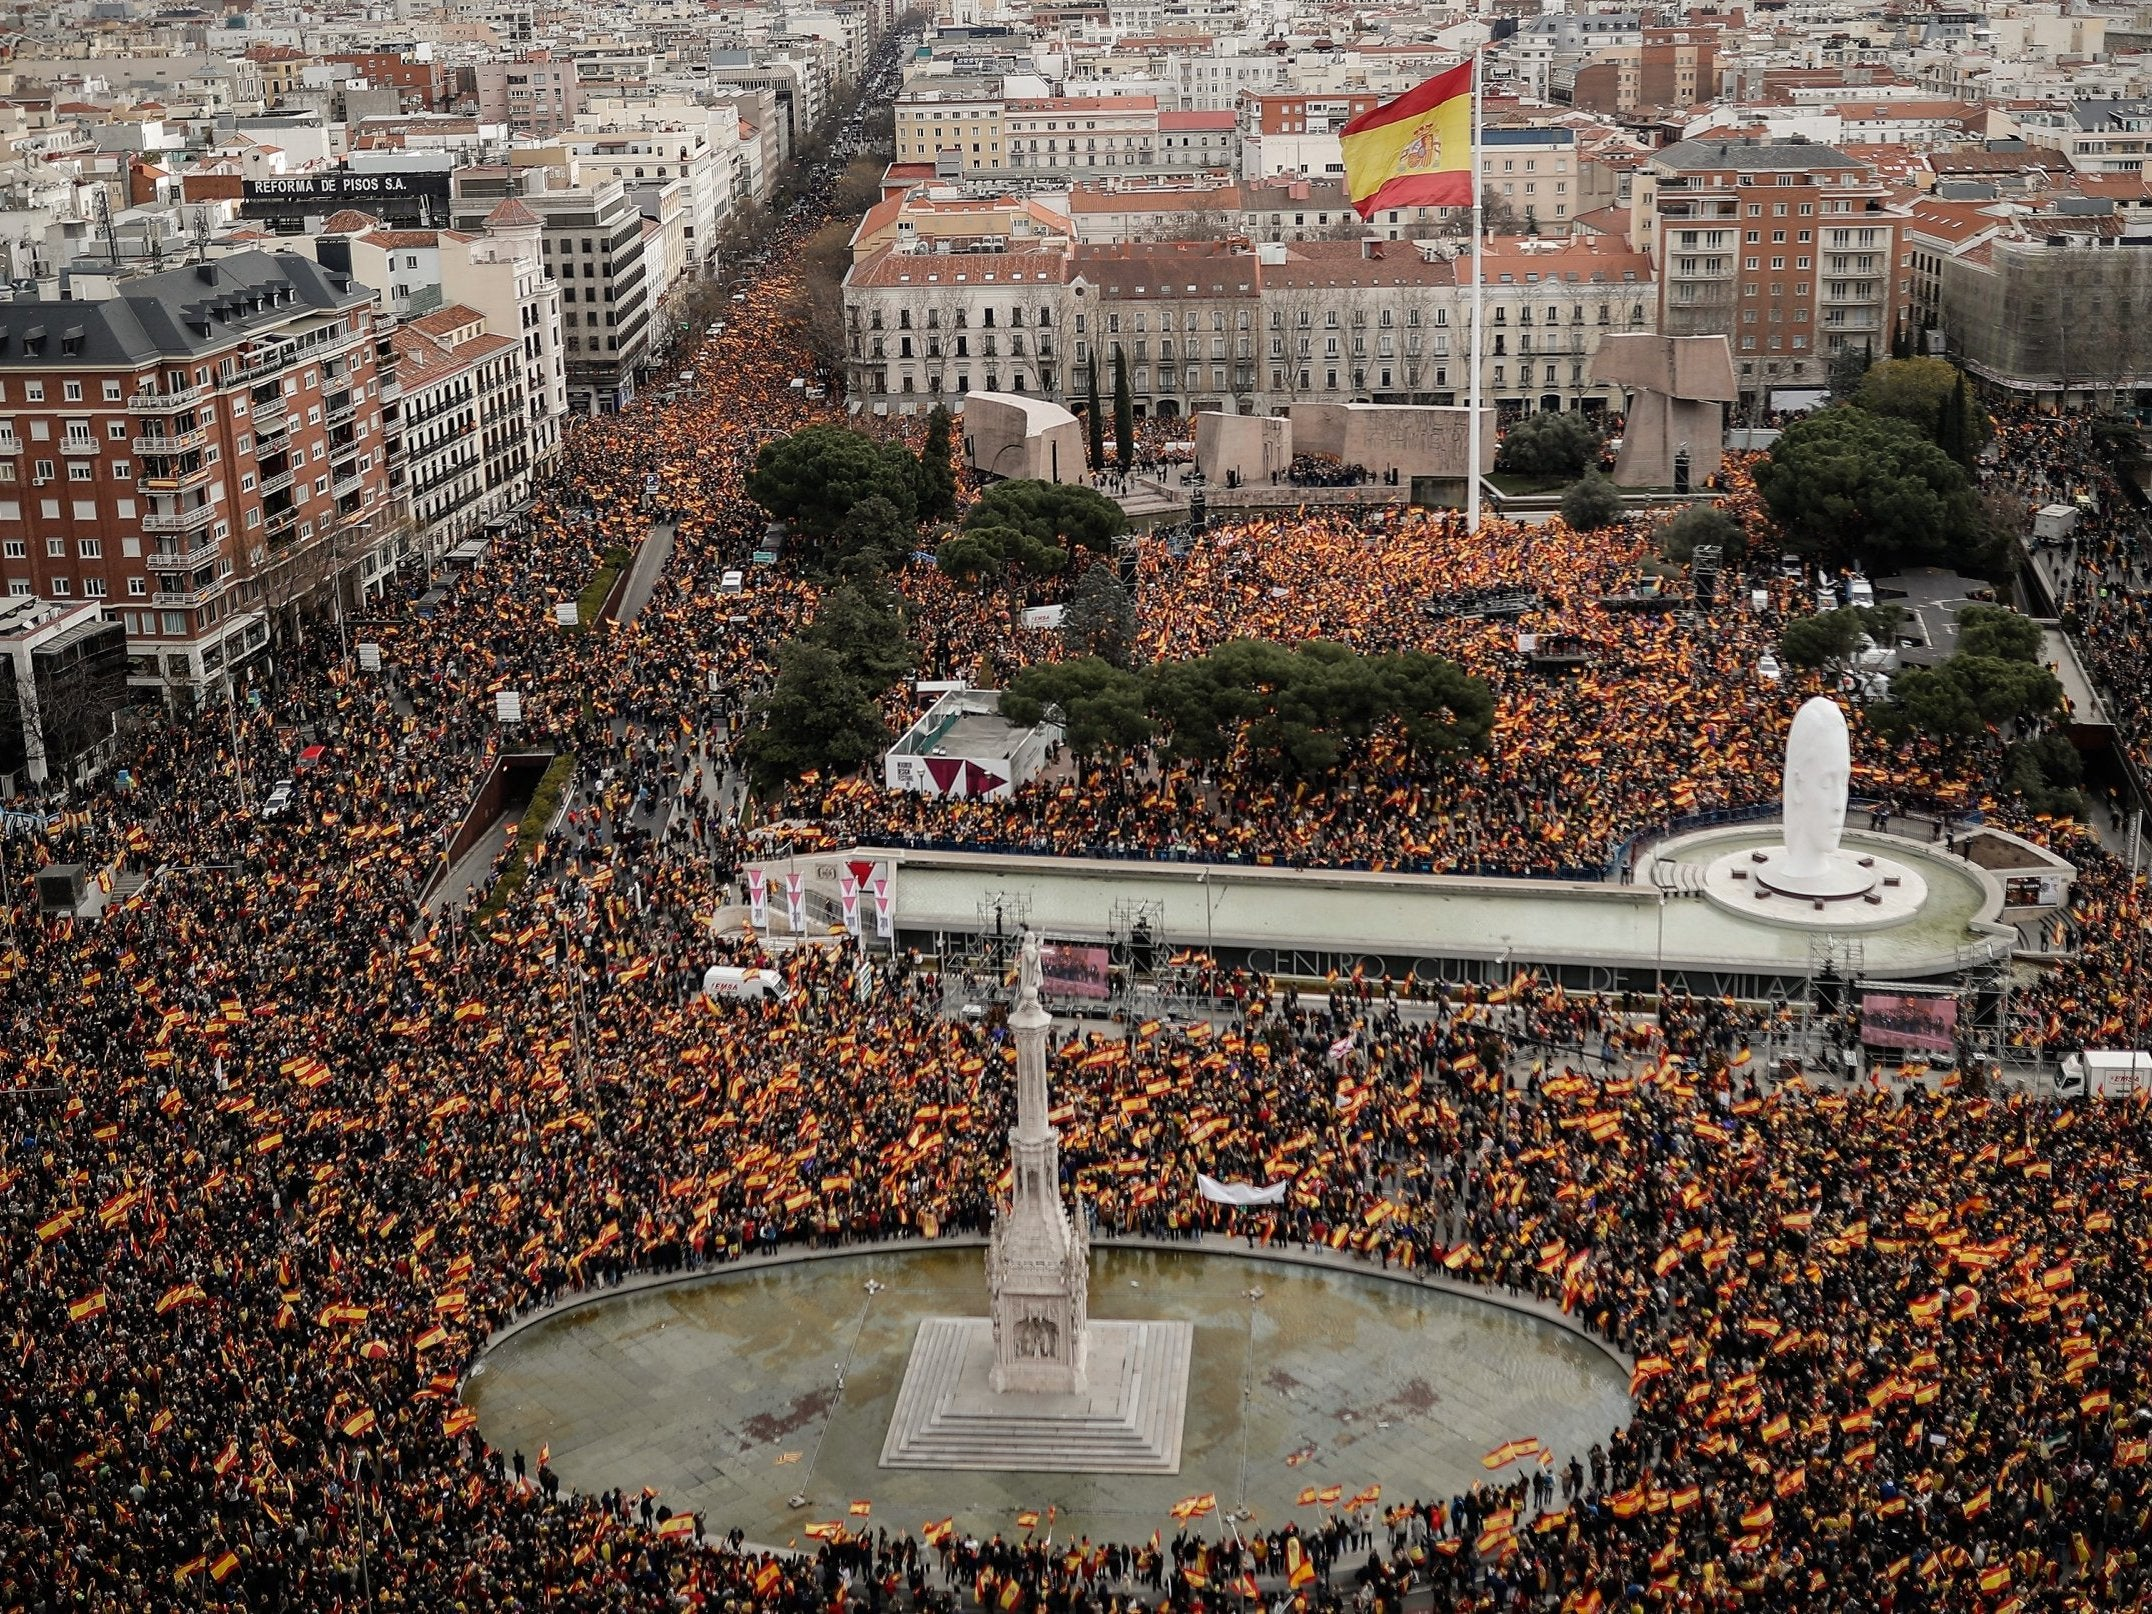 Editorial: Spain's trial of Catalan separatists is a terrible mistake